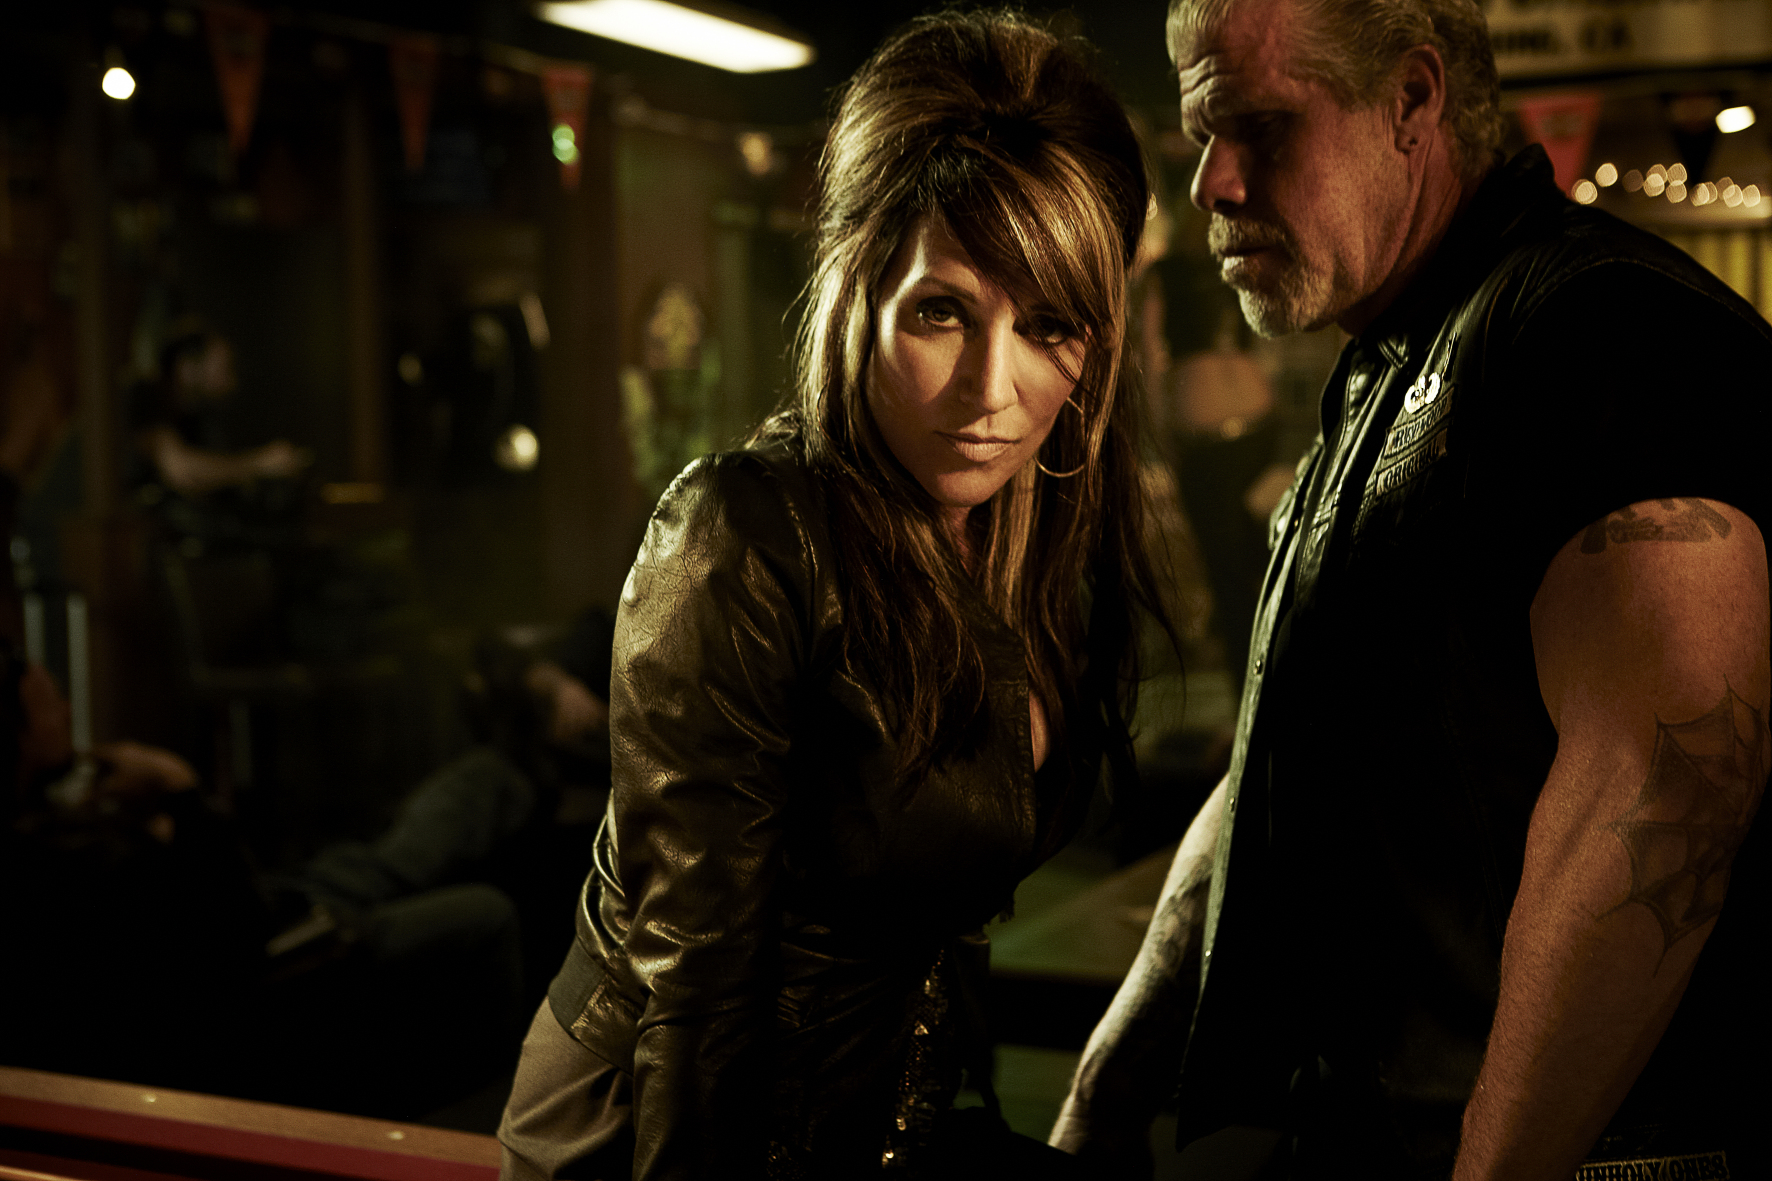 SONS OF ANARCHY: L-R: Katey Sagal and Ron Perlman. CR: James Minchin III / FX